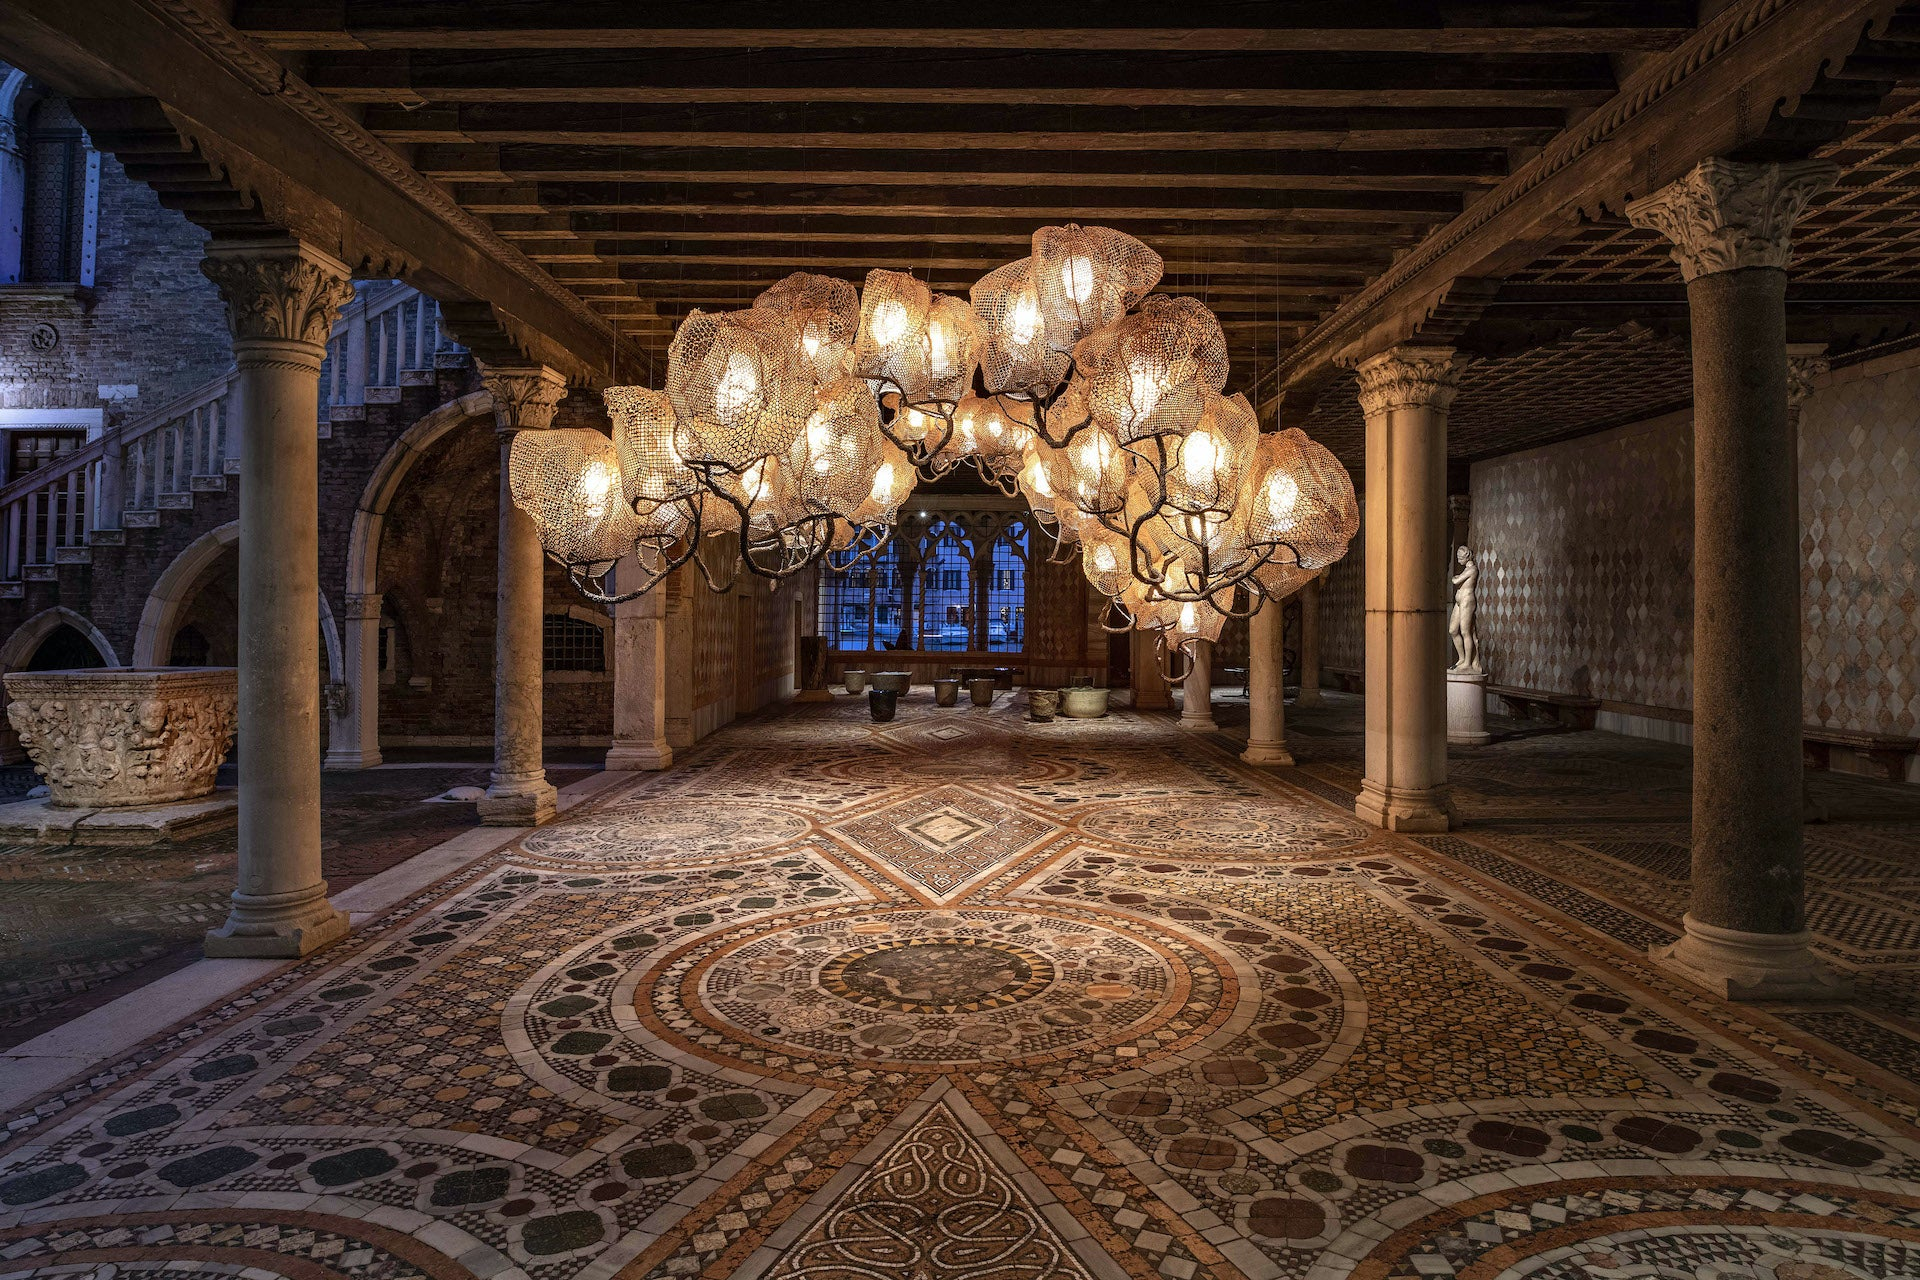 Inside a Forest Cloud Chandelier by Nacho Carbonell for Carpenters Workshop Gallery, installed at Galleria Giorgio Franchetti alla Ca' d'Oro in Venice, 2019. Photo © Carpenters Workshop Gallery